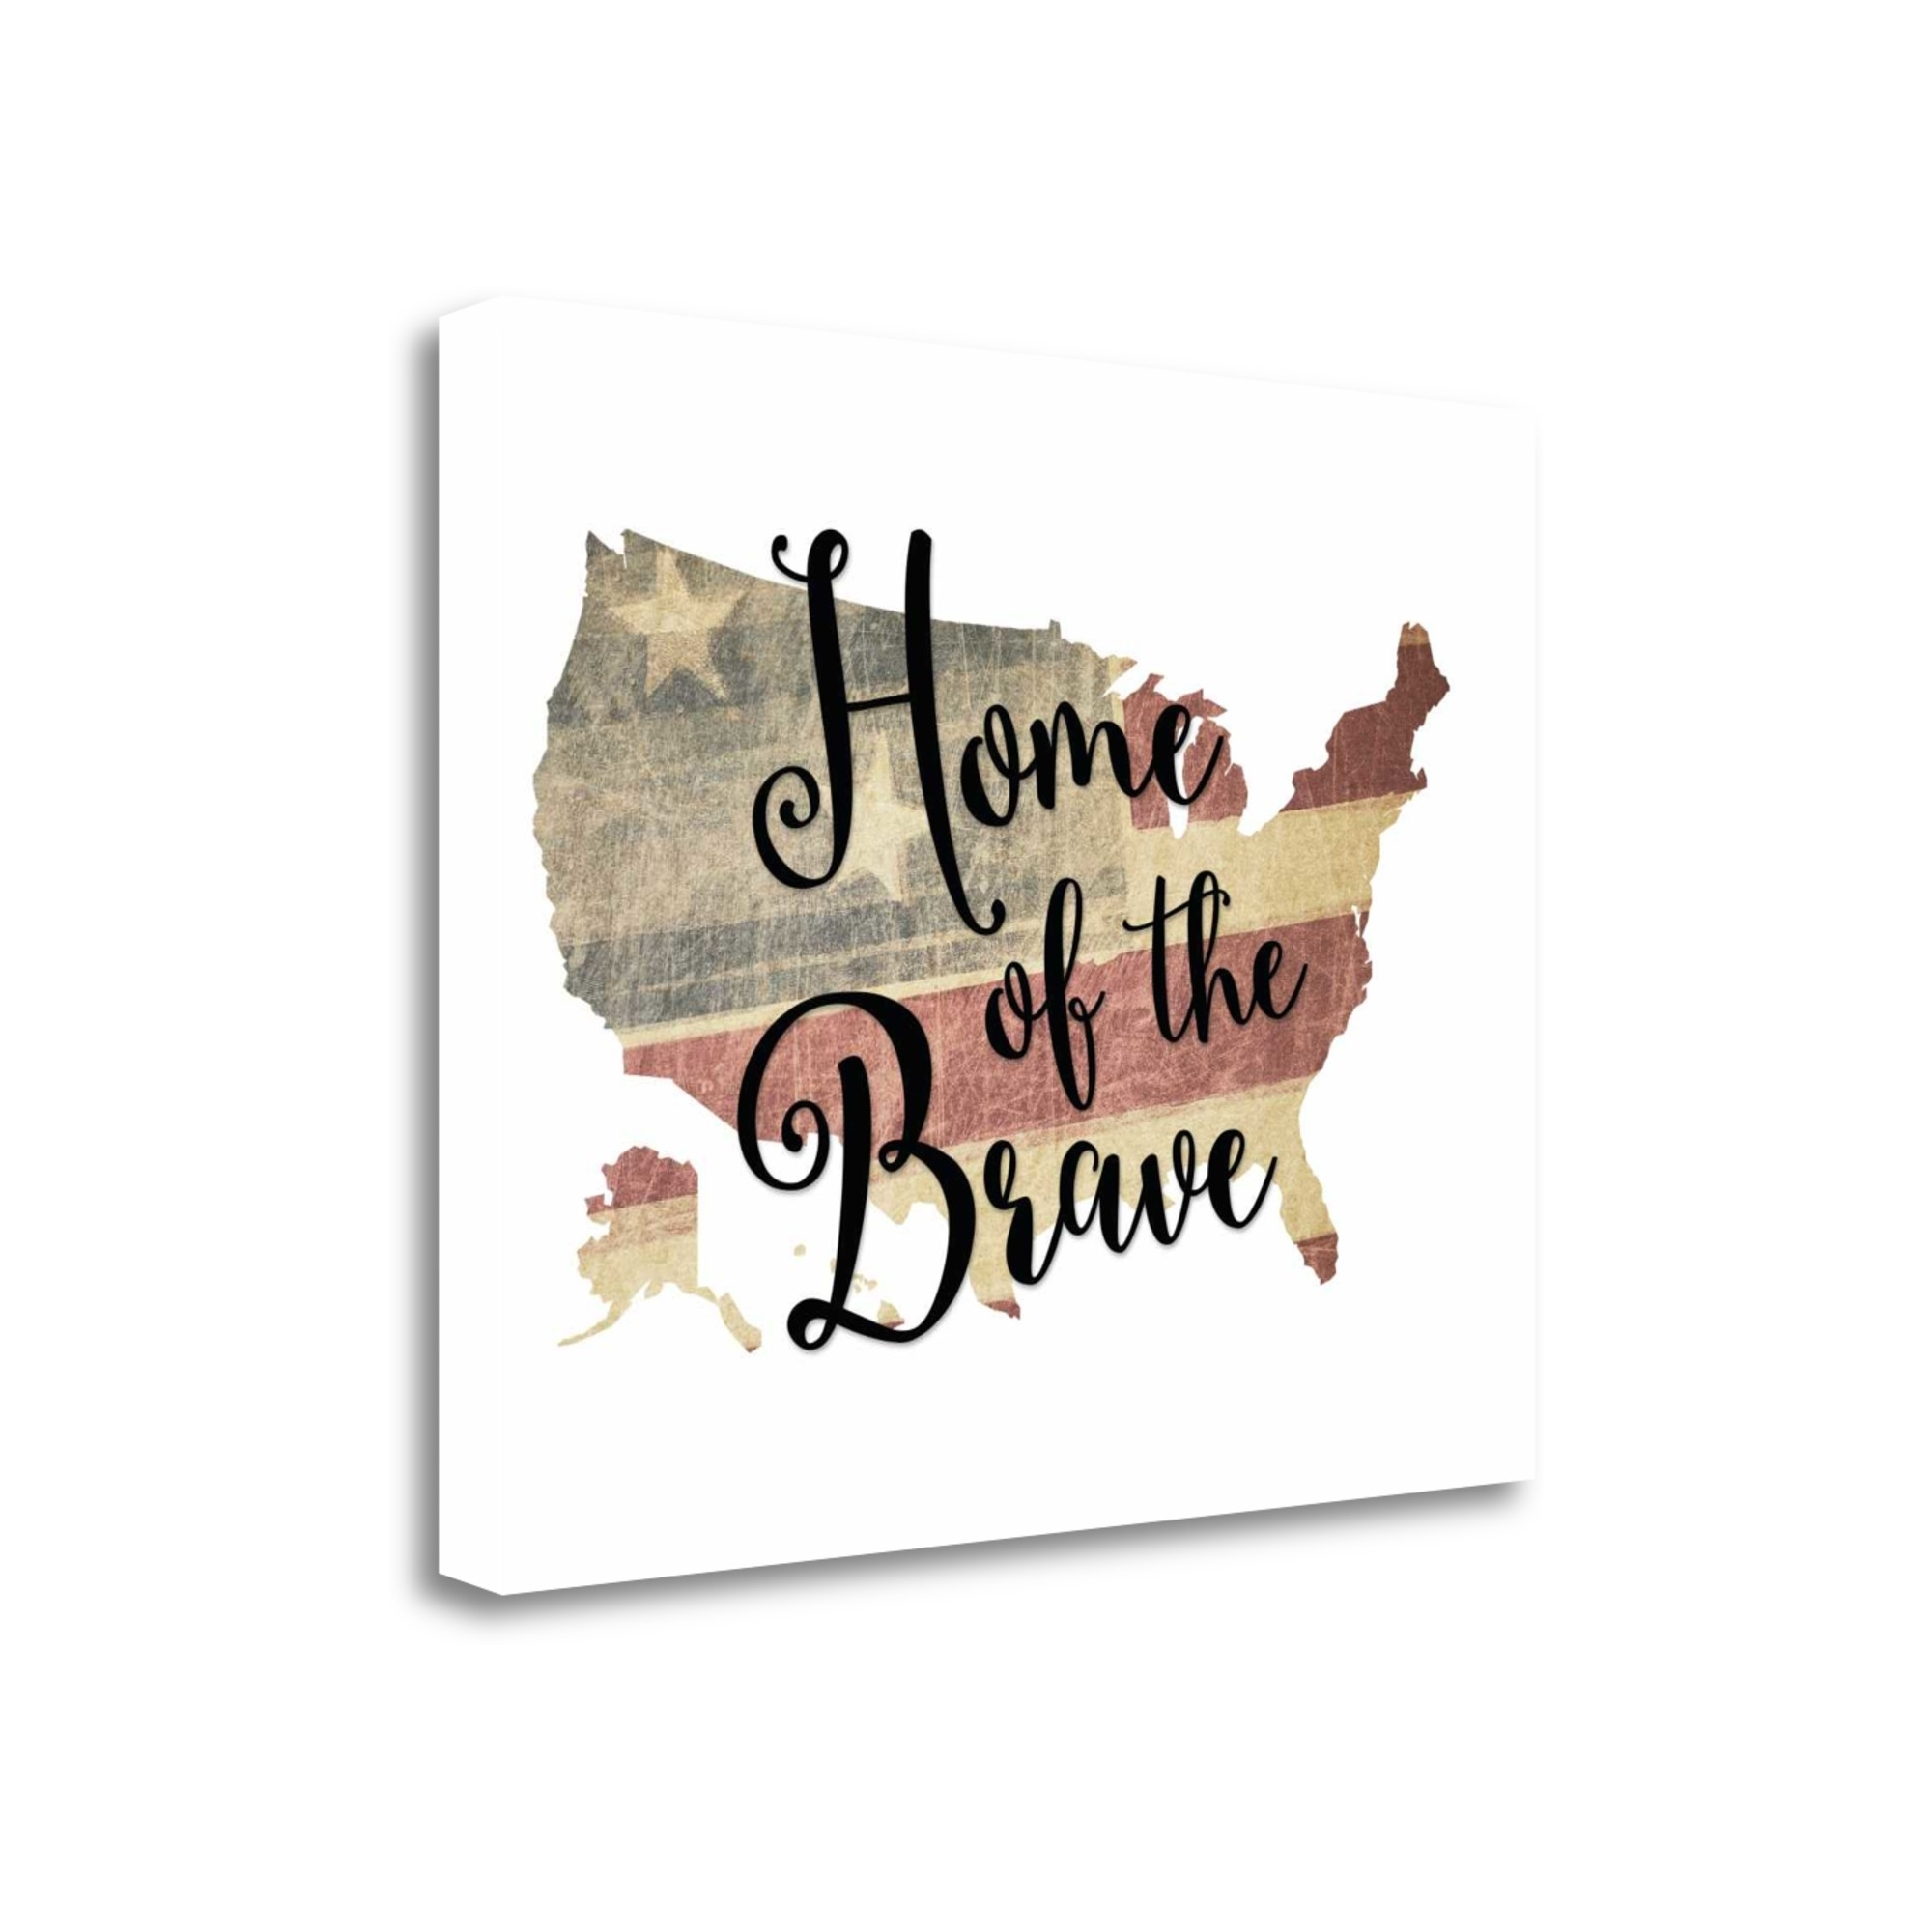 "Home Of The Brave By Tara Moss, 23"" x 18\"" Fine Art Giclee Print on Gallery Wrap Canvas, Ready to Hang"